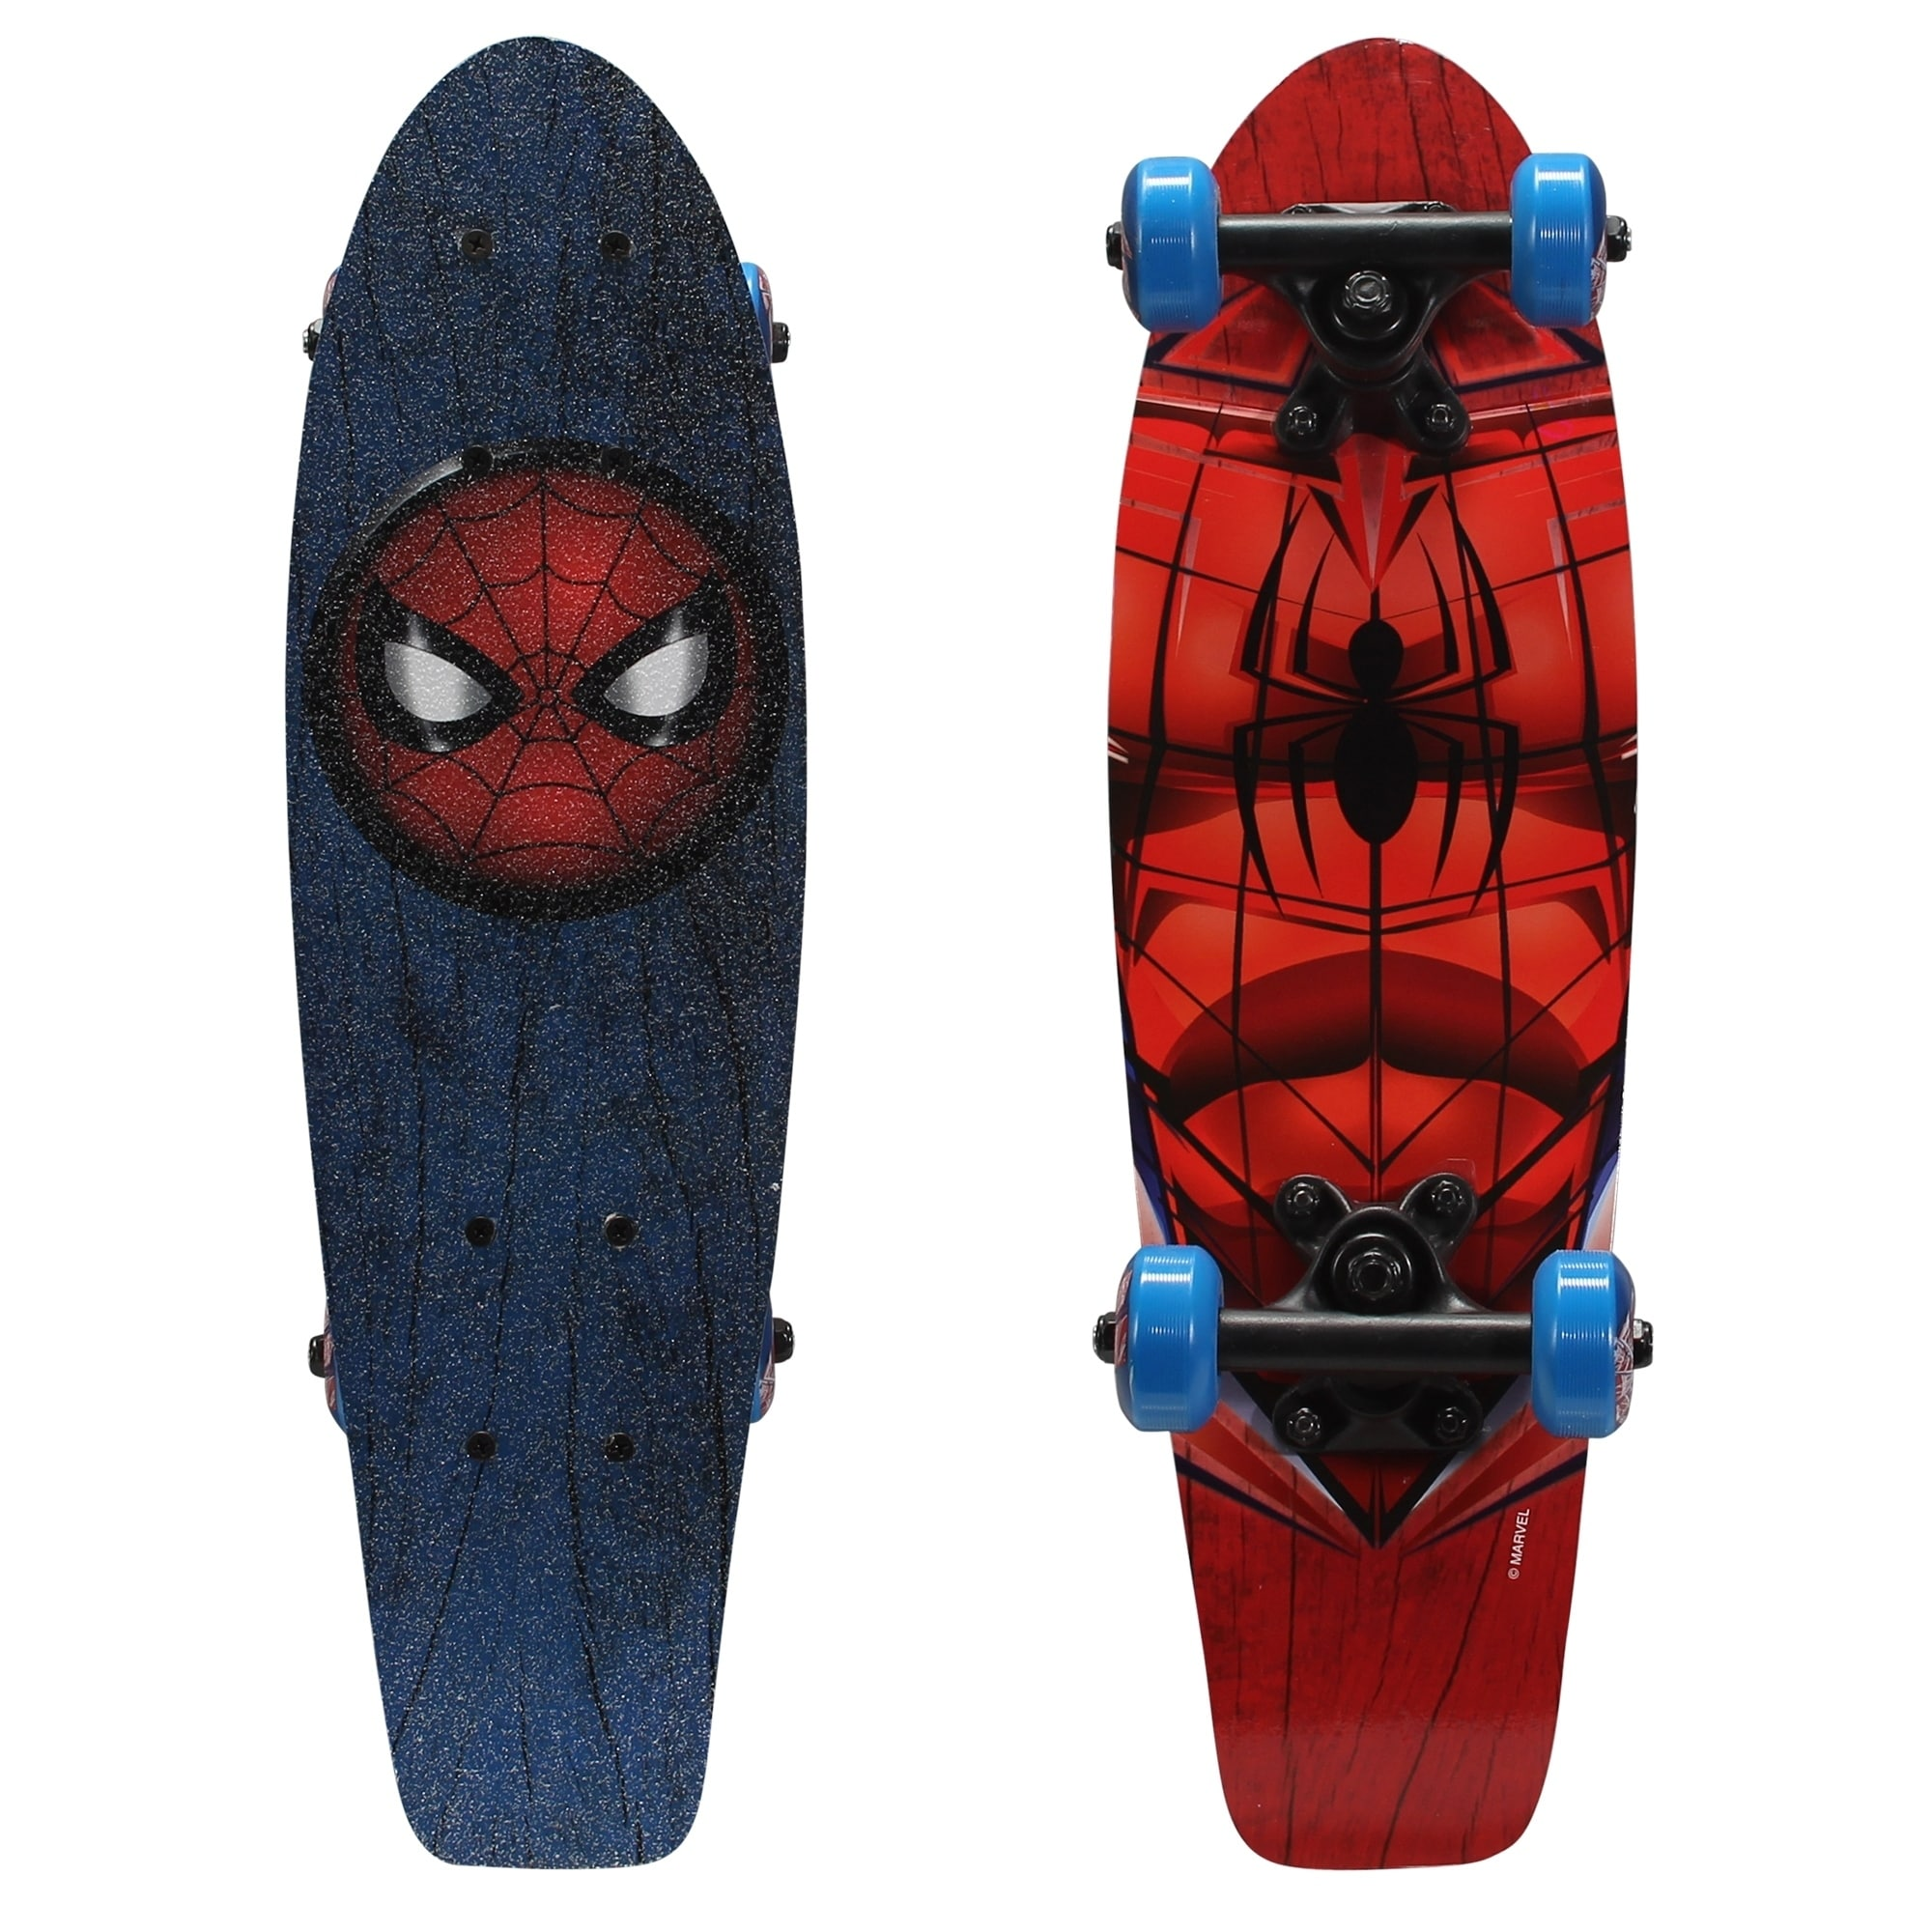 "Playwheels Spider-Man Kid's 21"" Complete Skateboard by Generic"